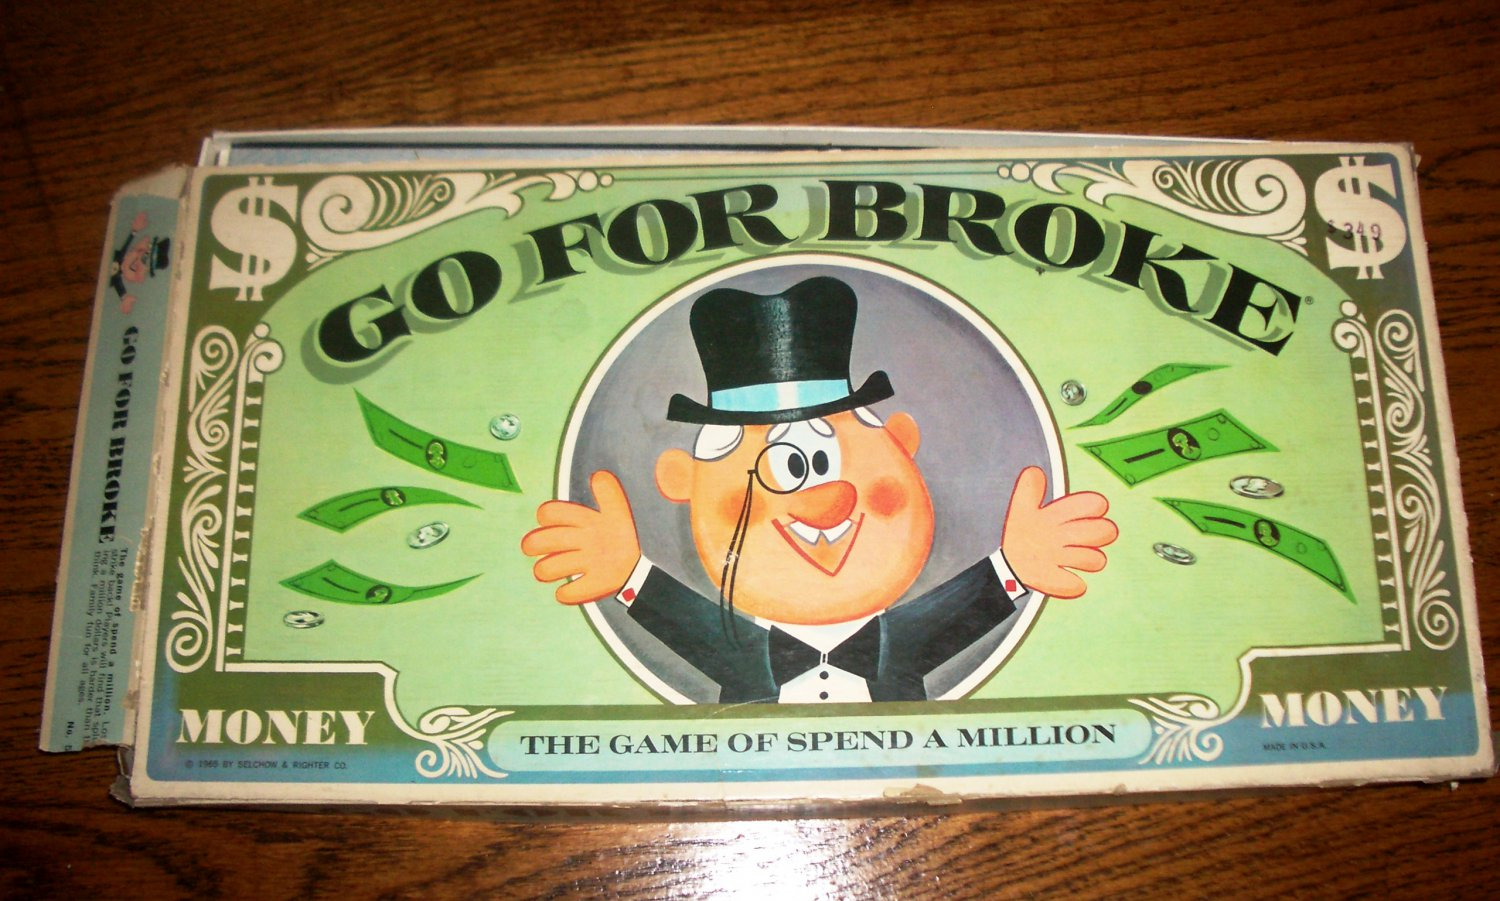 Go For Broke Vintage Board Game by Selchow & Righter 1965